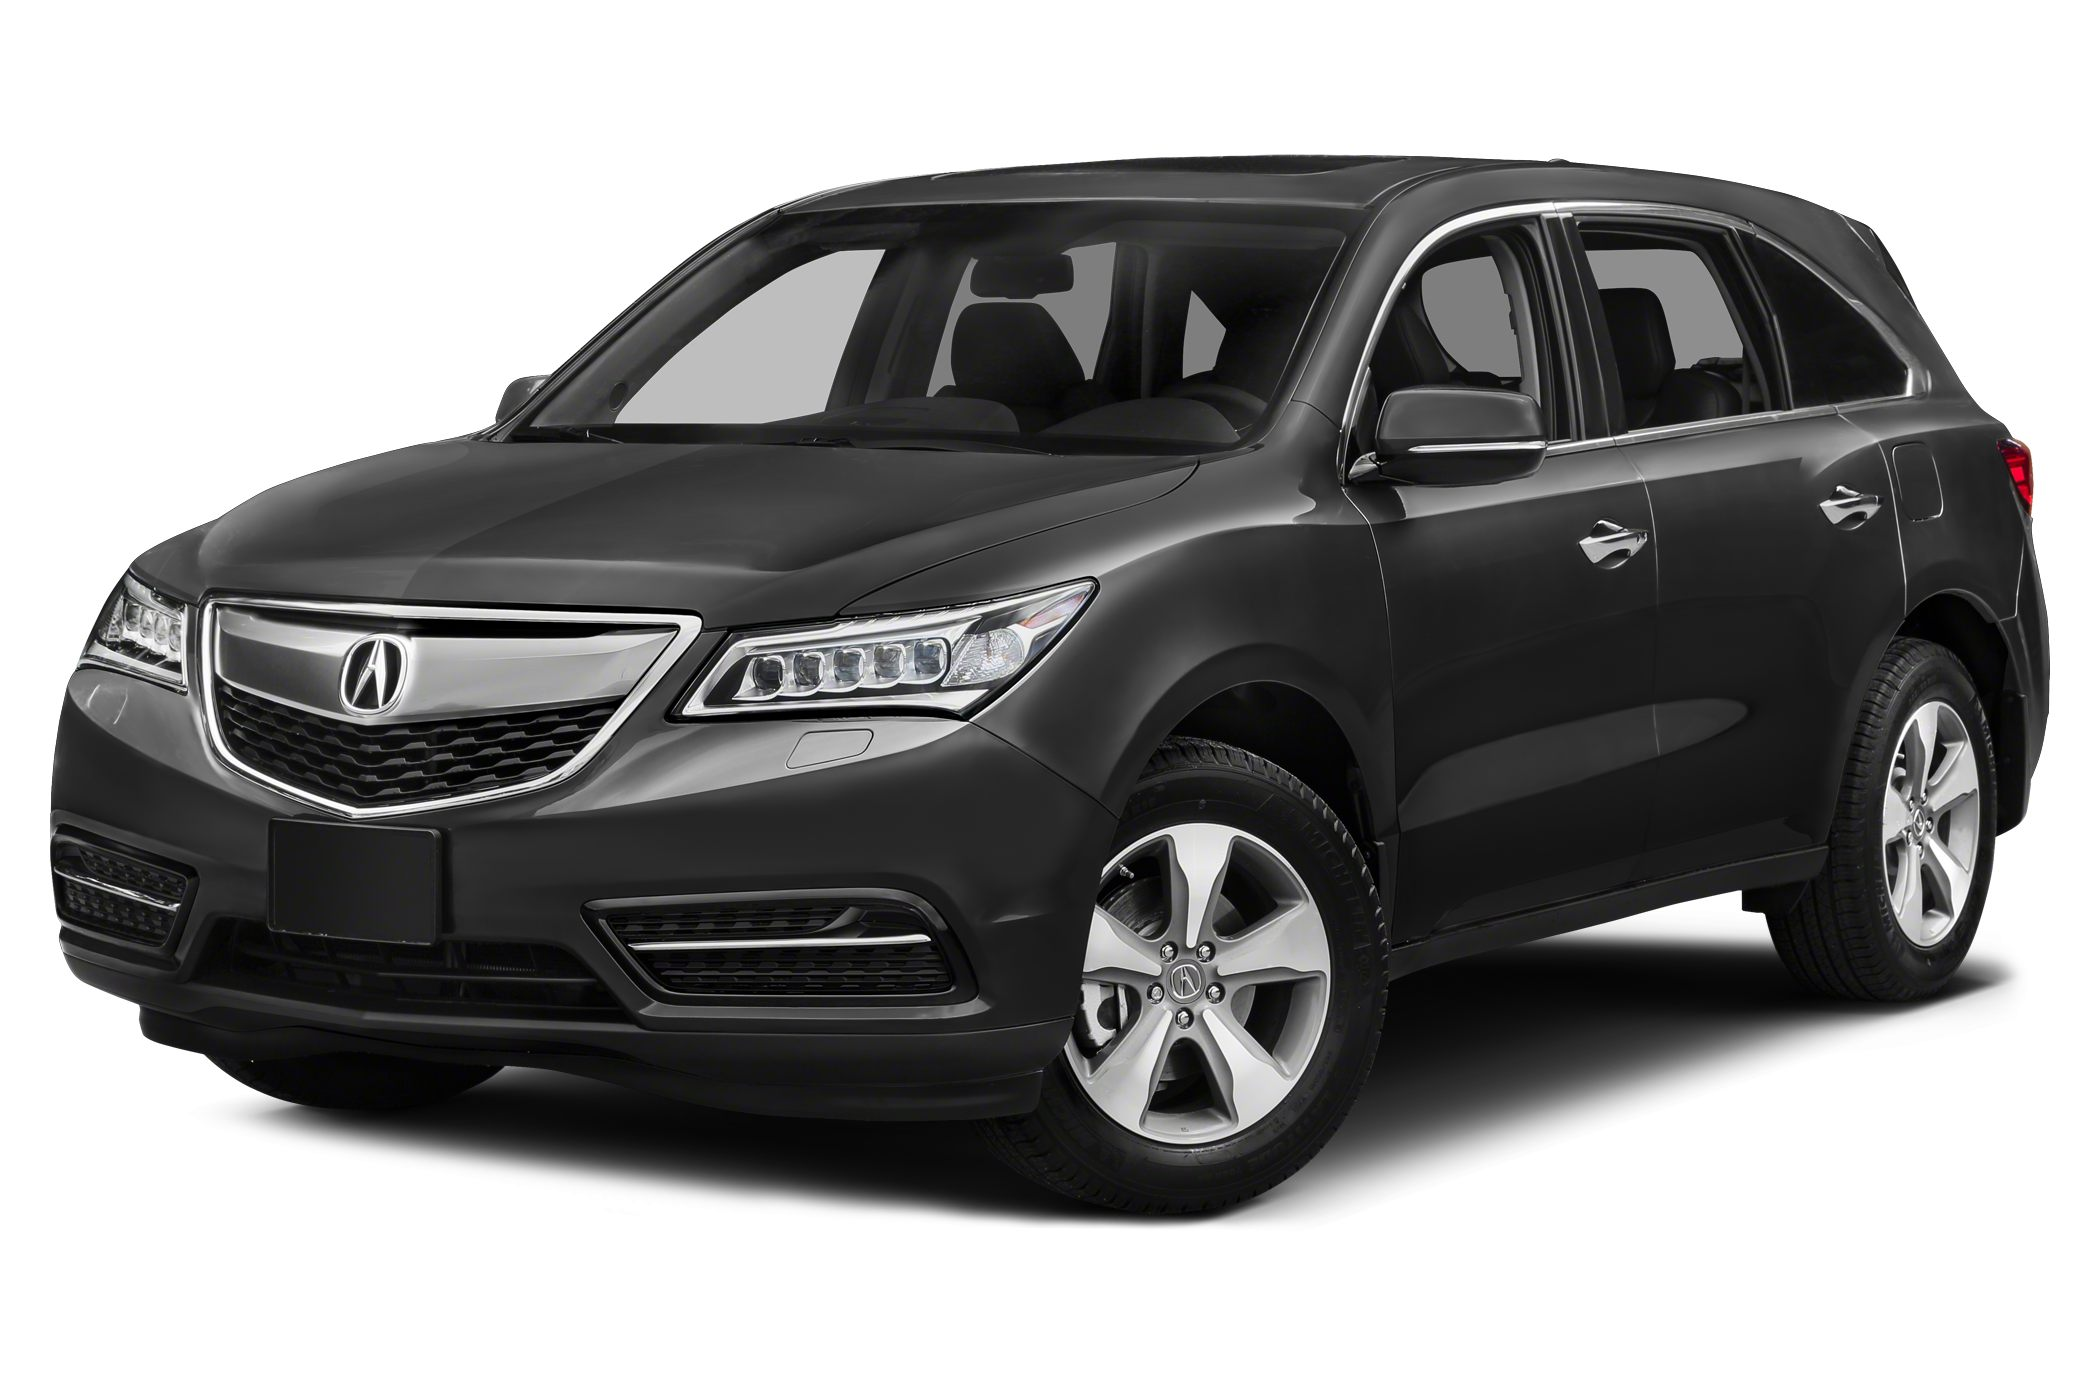 2015 Acura MDX 3.5L SUV for sale in Columbus for $45,460 with 1,046 miles.